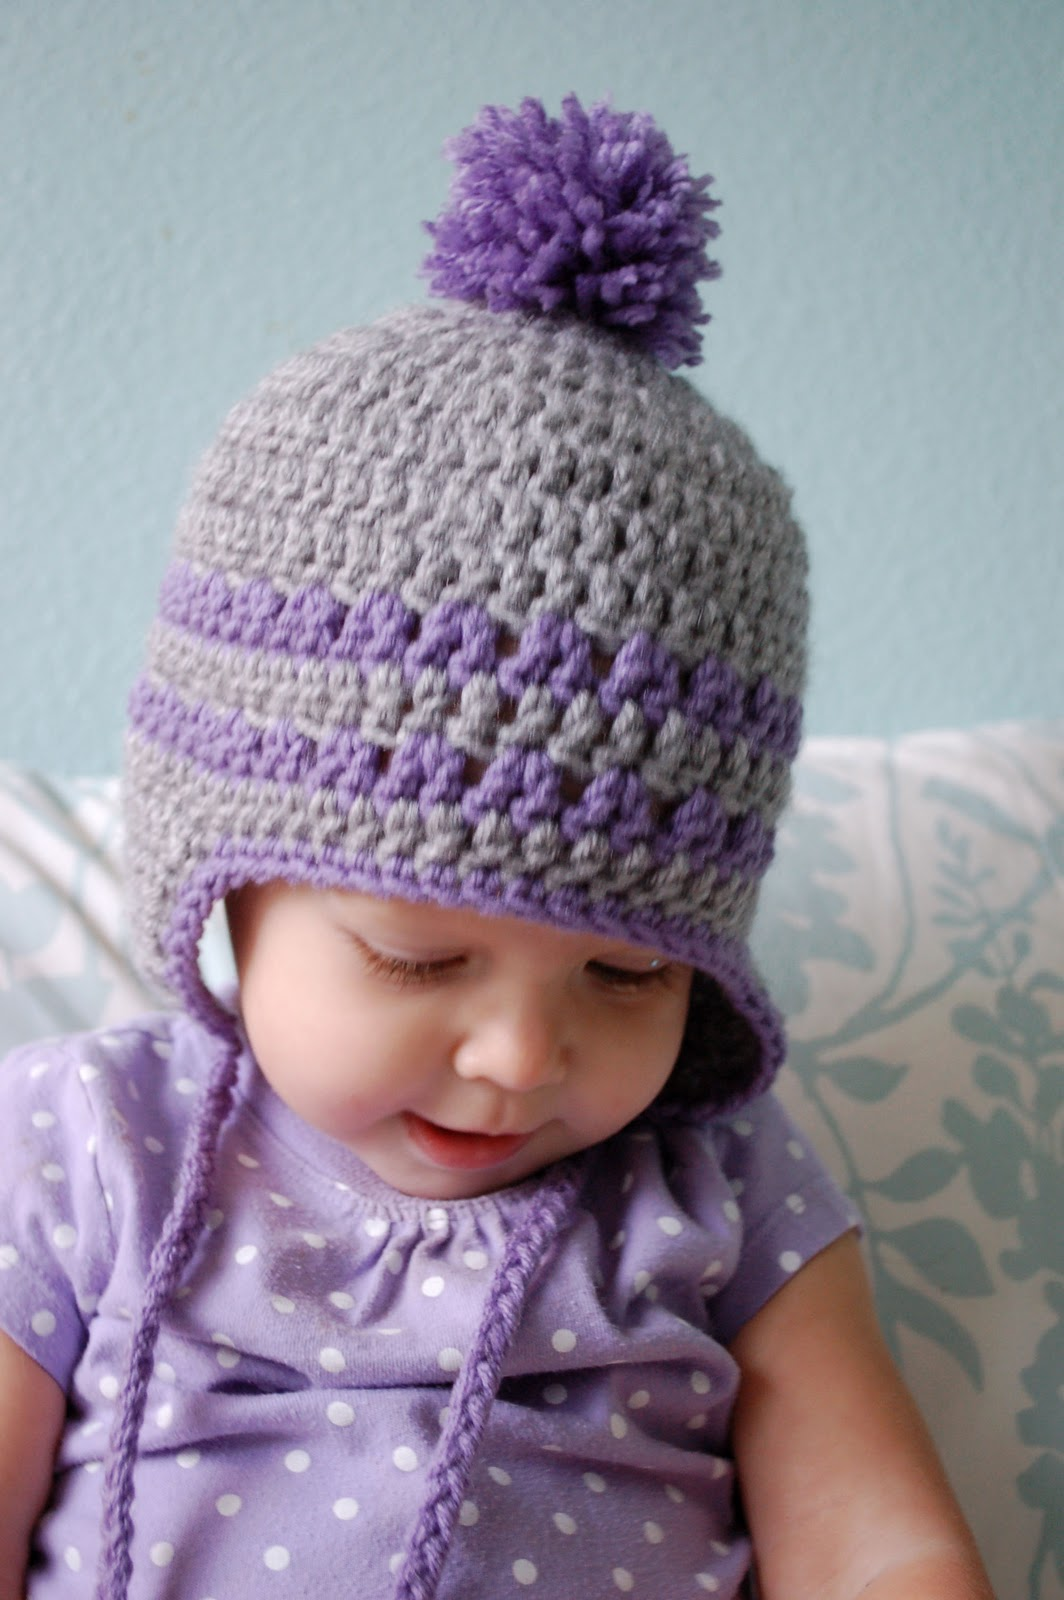 Double Crochet Hat Pattern With Ear Flaps : Alli Crafts: Free Pattern: Earflap Hat - 9-12 Months